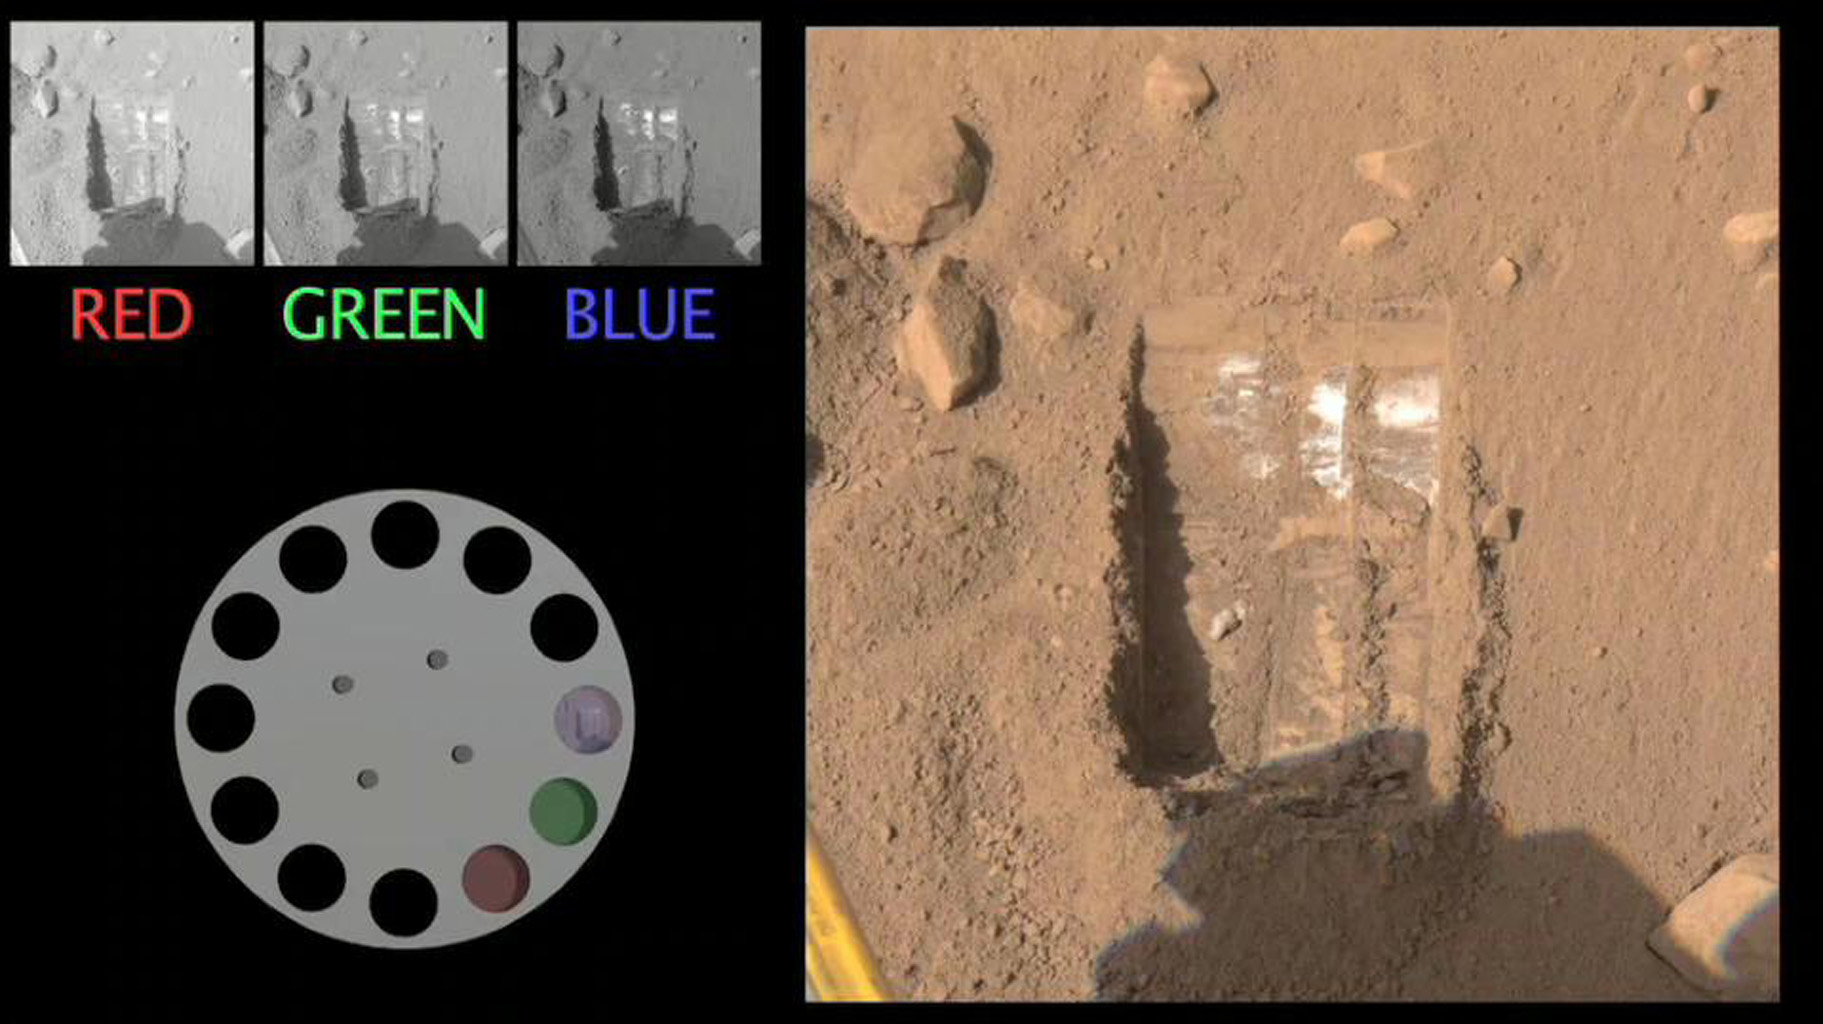 The Surface Stereo Imager onboard NASA's Phoenix Mars Lander captures a scene with three different filters. The images are sent to Earth in black and white and the color is added by mission scientists.